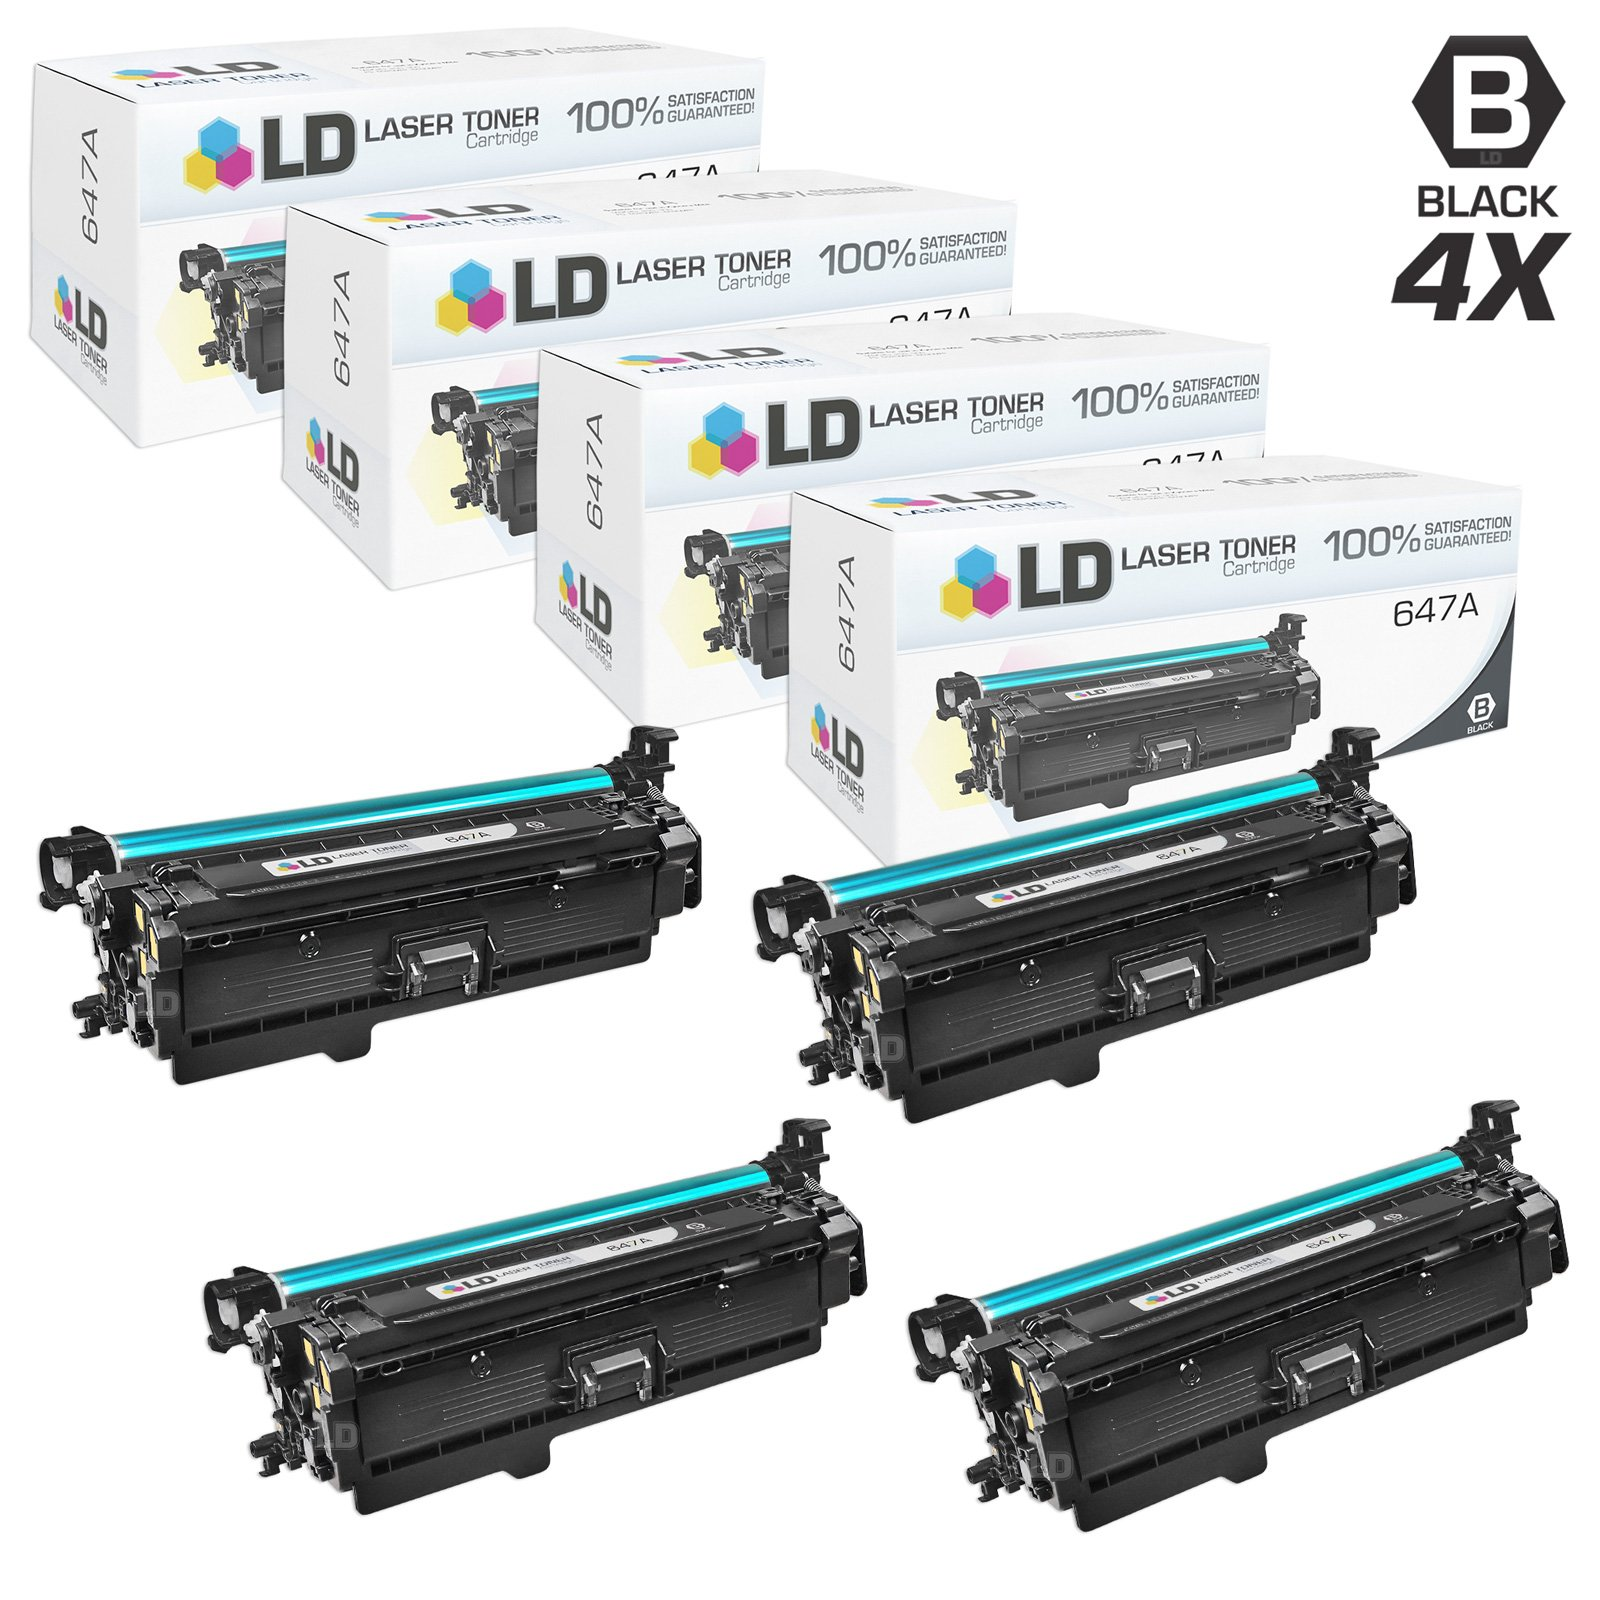 LD Remanufactured Toner Cartridge Replacements for HP 647A CE260A (Black, 4-Pack)